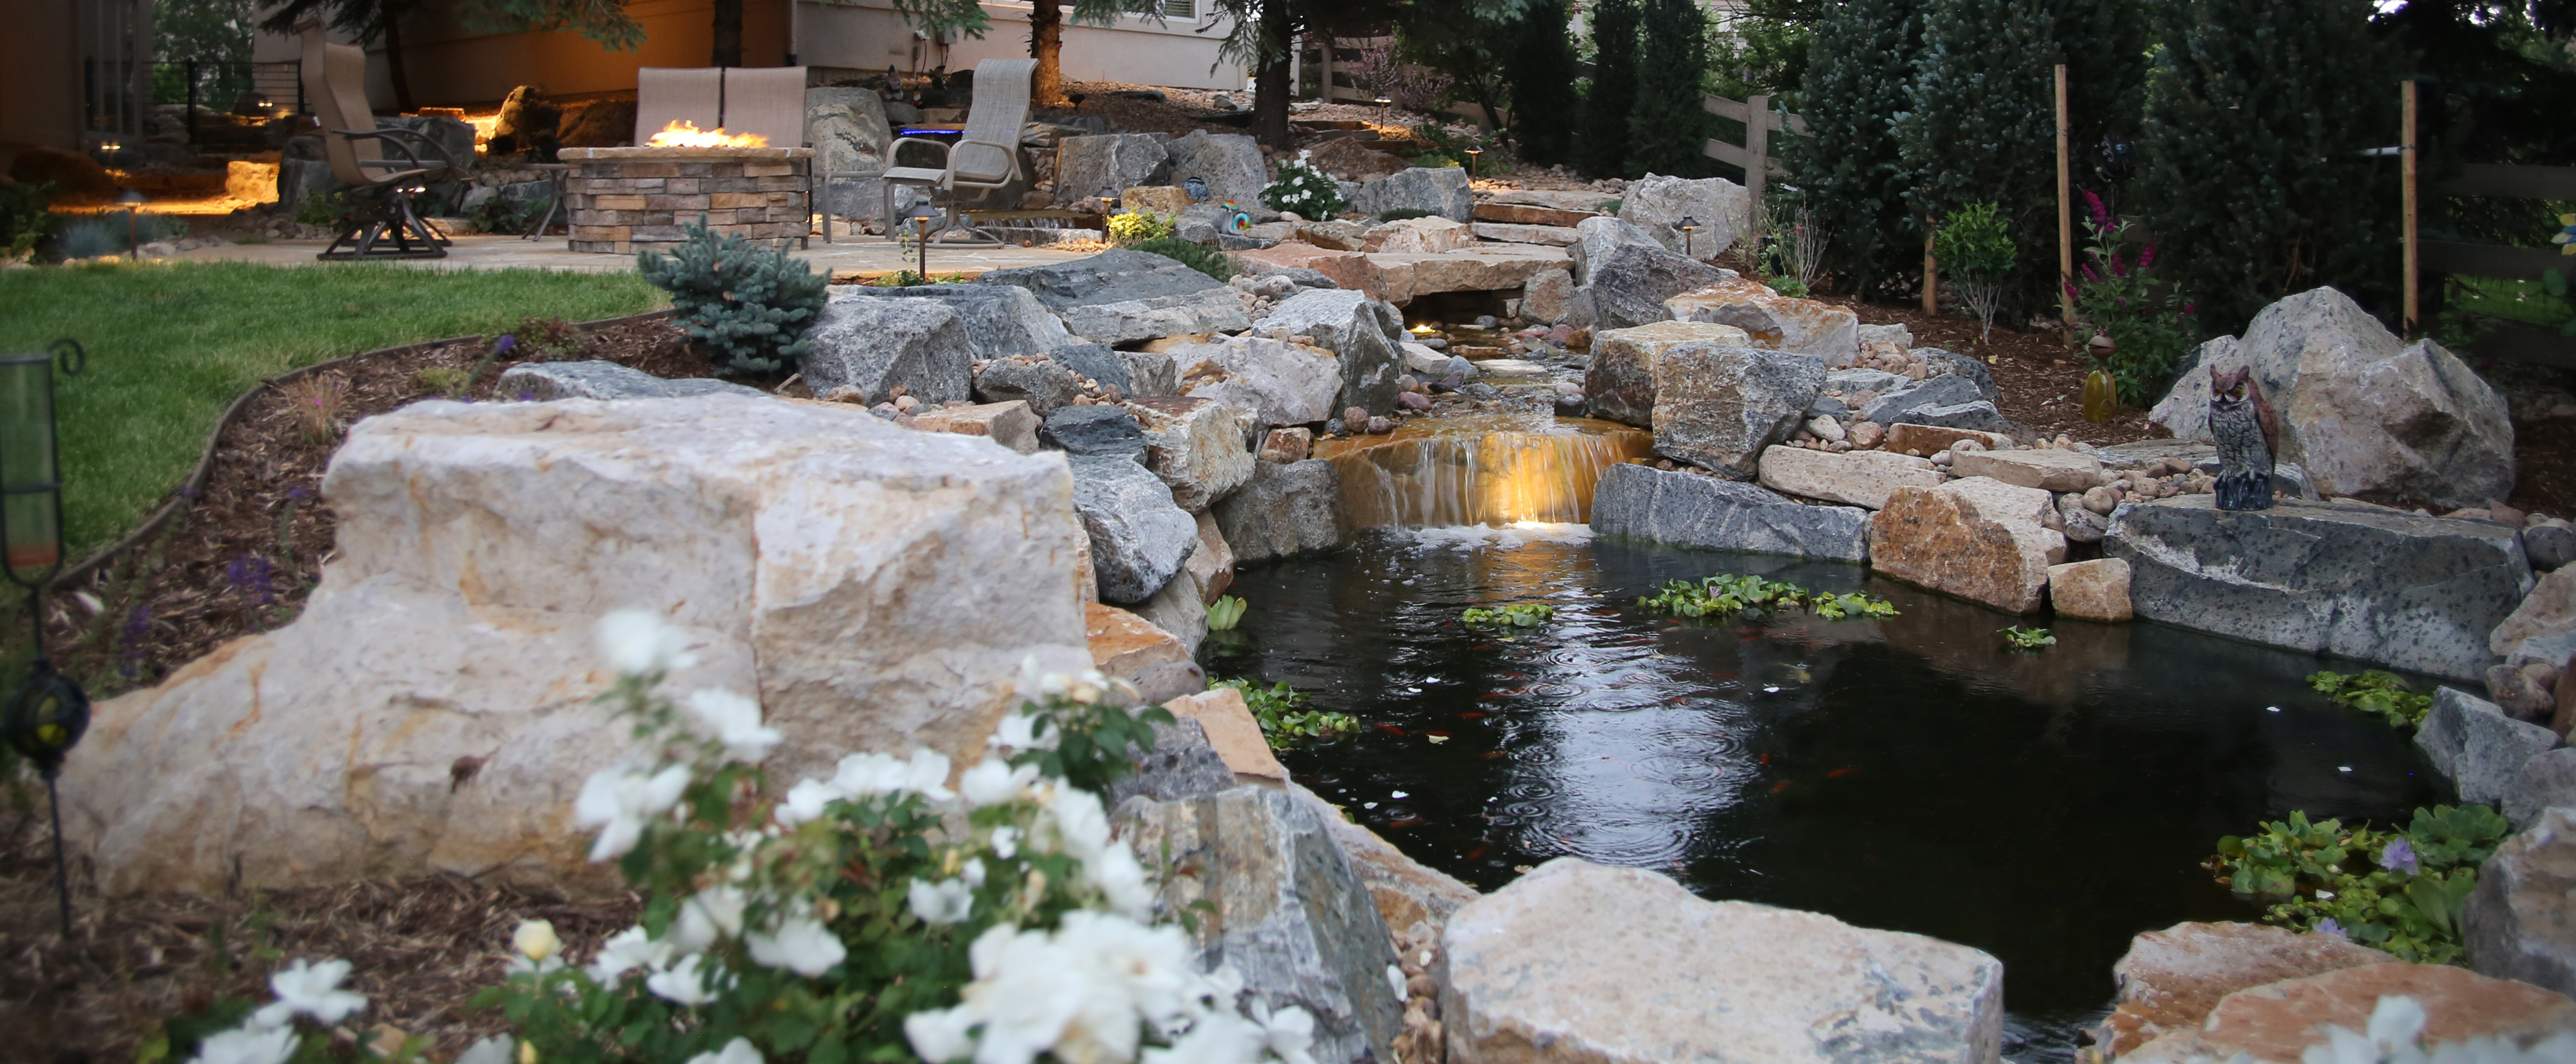 waterFeature2015c.jpg